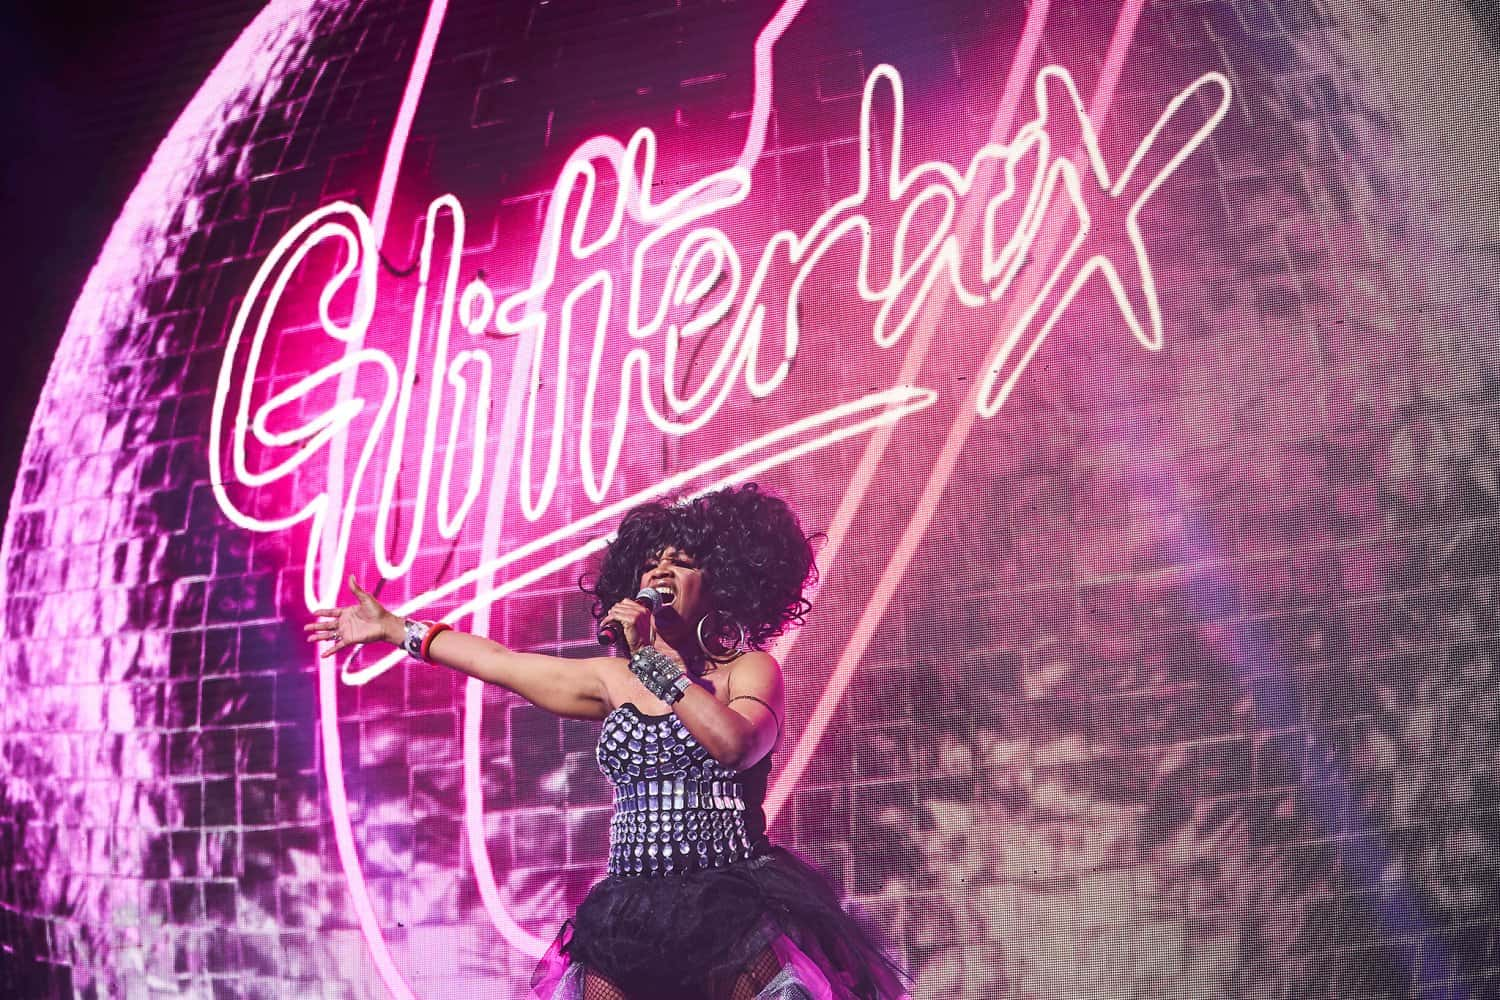 Glitterbox Ibiza 2021 - Tickets, Events and Lineup 8